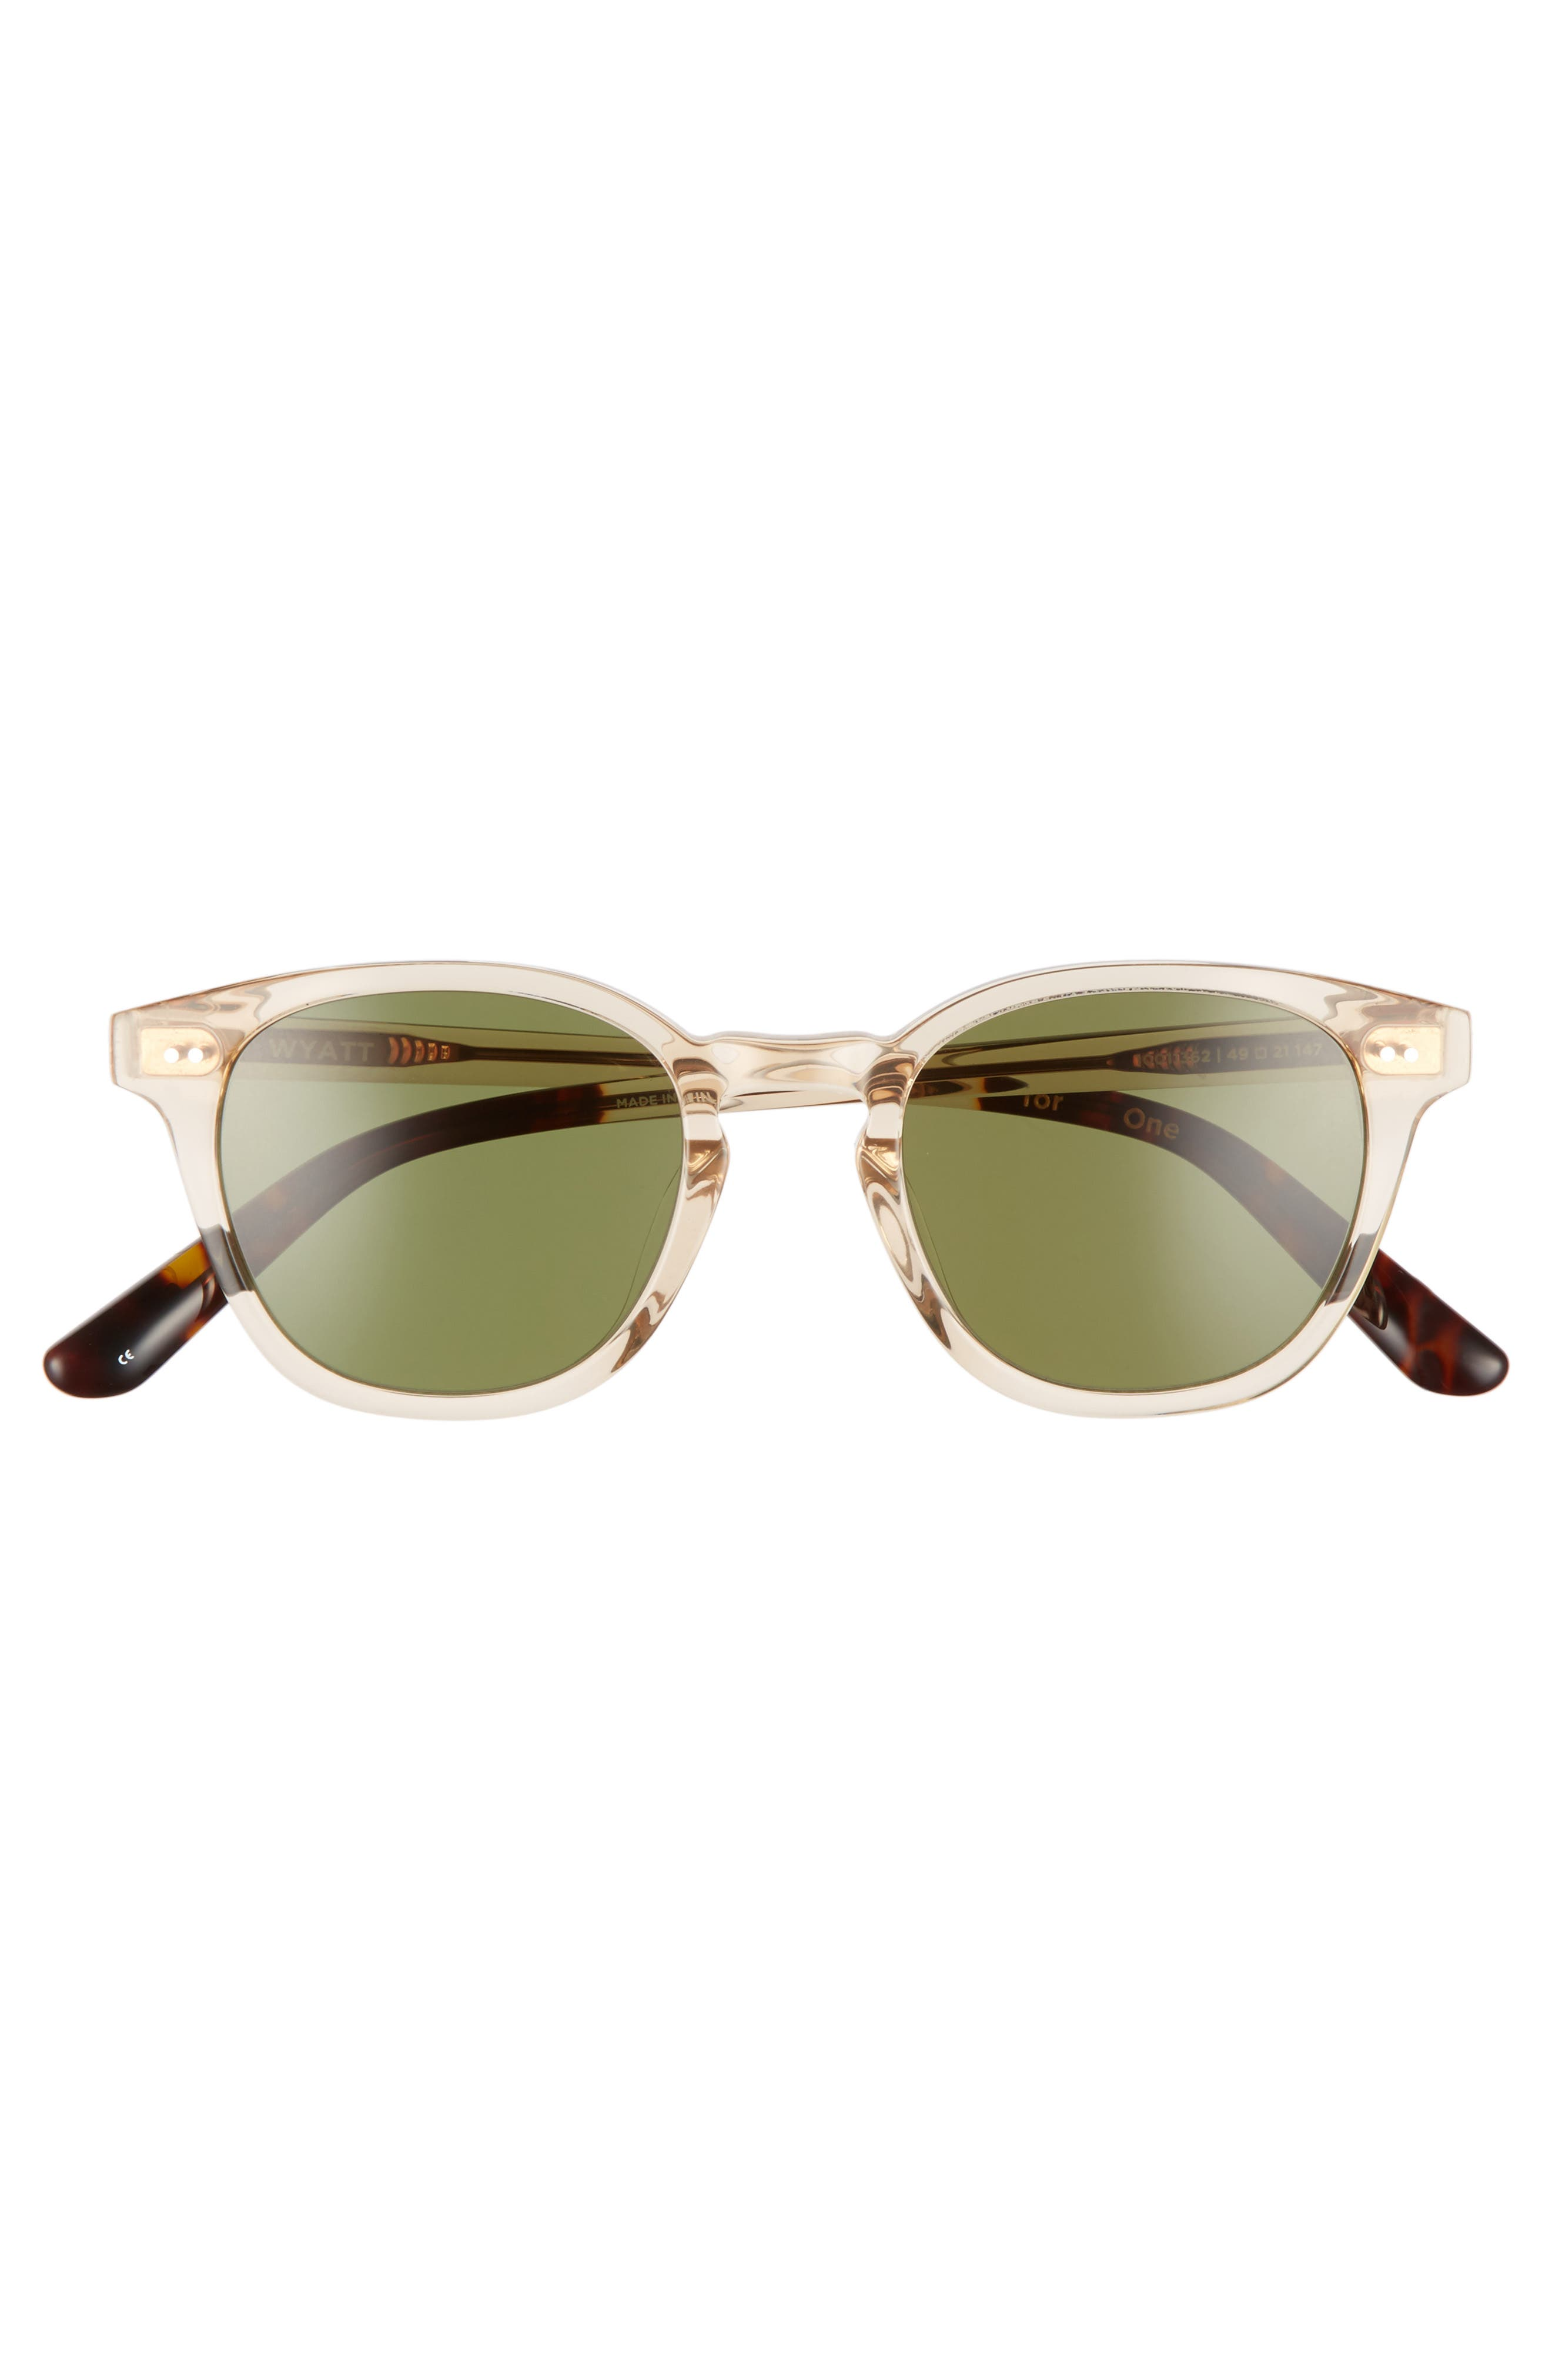 Wyatt 49mm Sunglasses,                             Alternate thumbnail 2, color,                             100